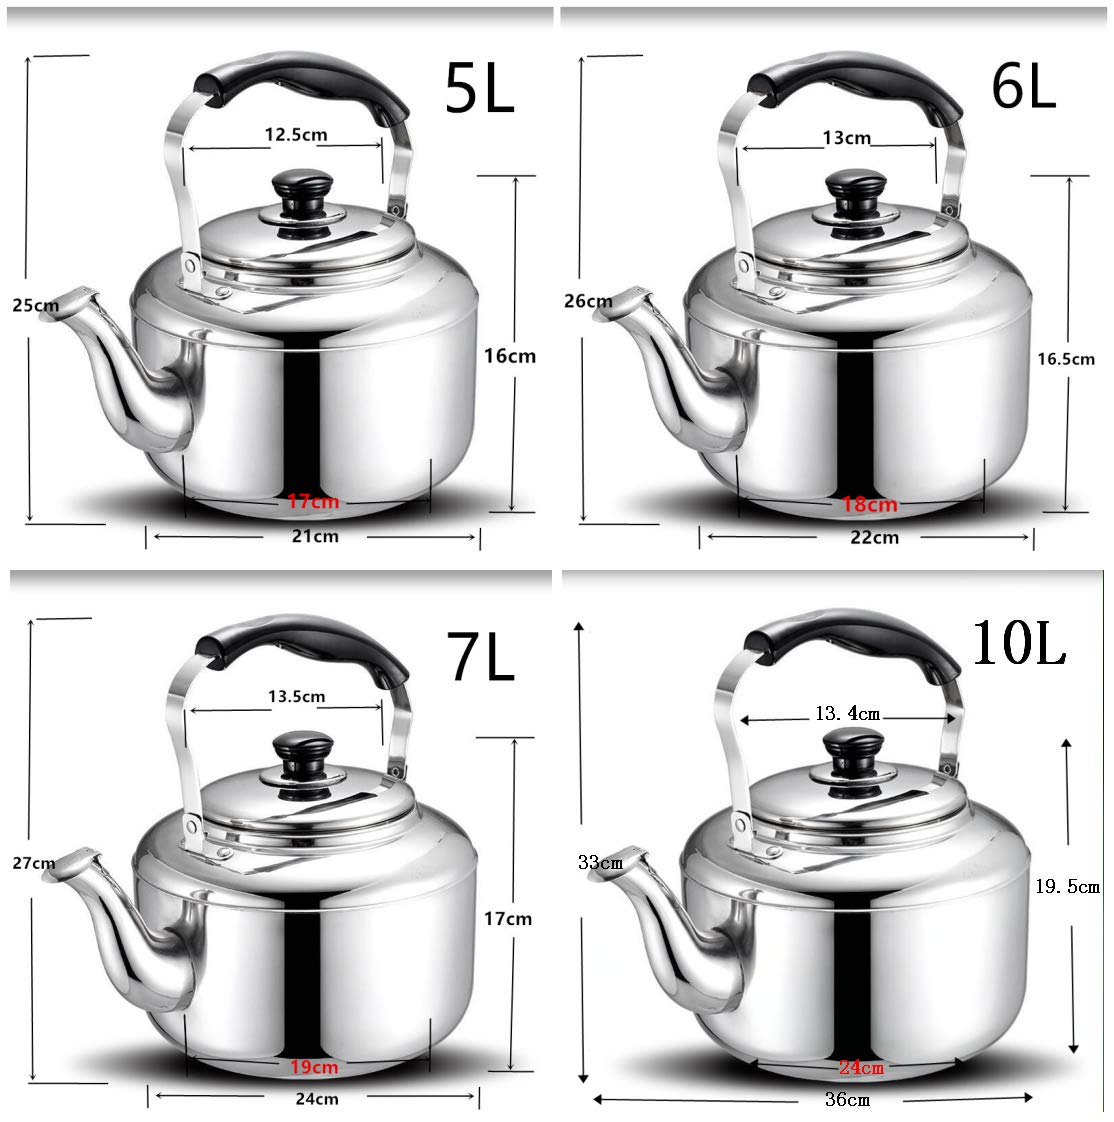 Extra Sturdy Stainless Steel Whistling Tea Kettle for Stovetop Induction Cooker, 10 Quart by Towa (Image #7)